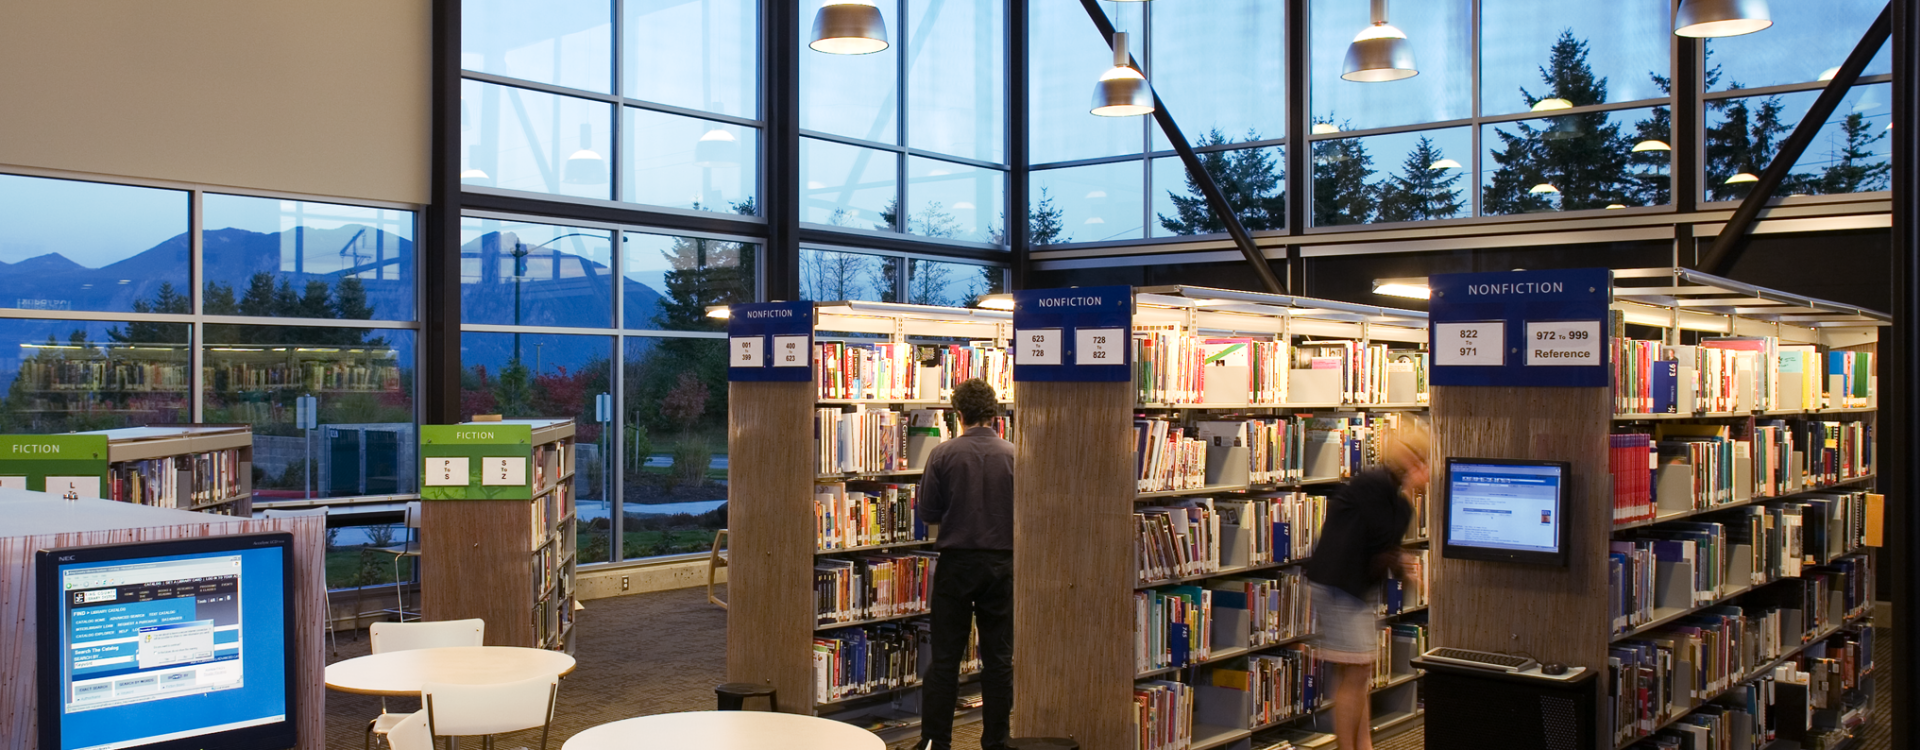 KING COUNTY LIBRARY - BURIEN